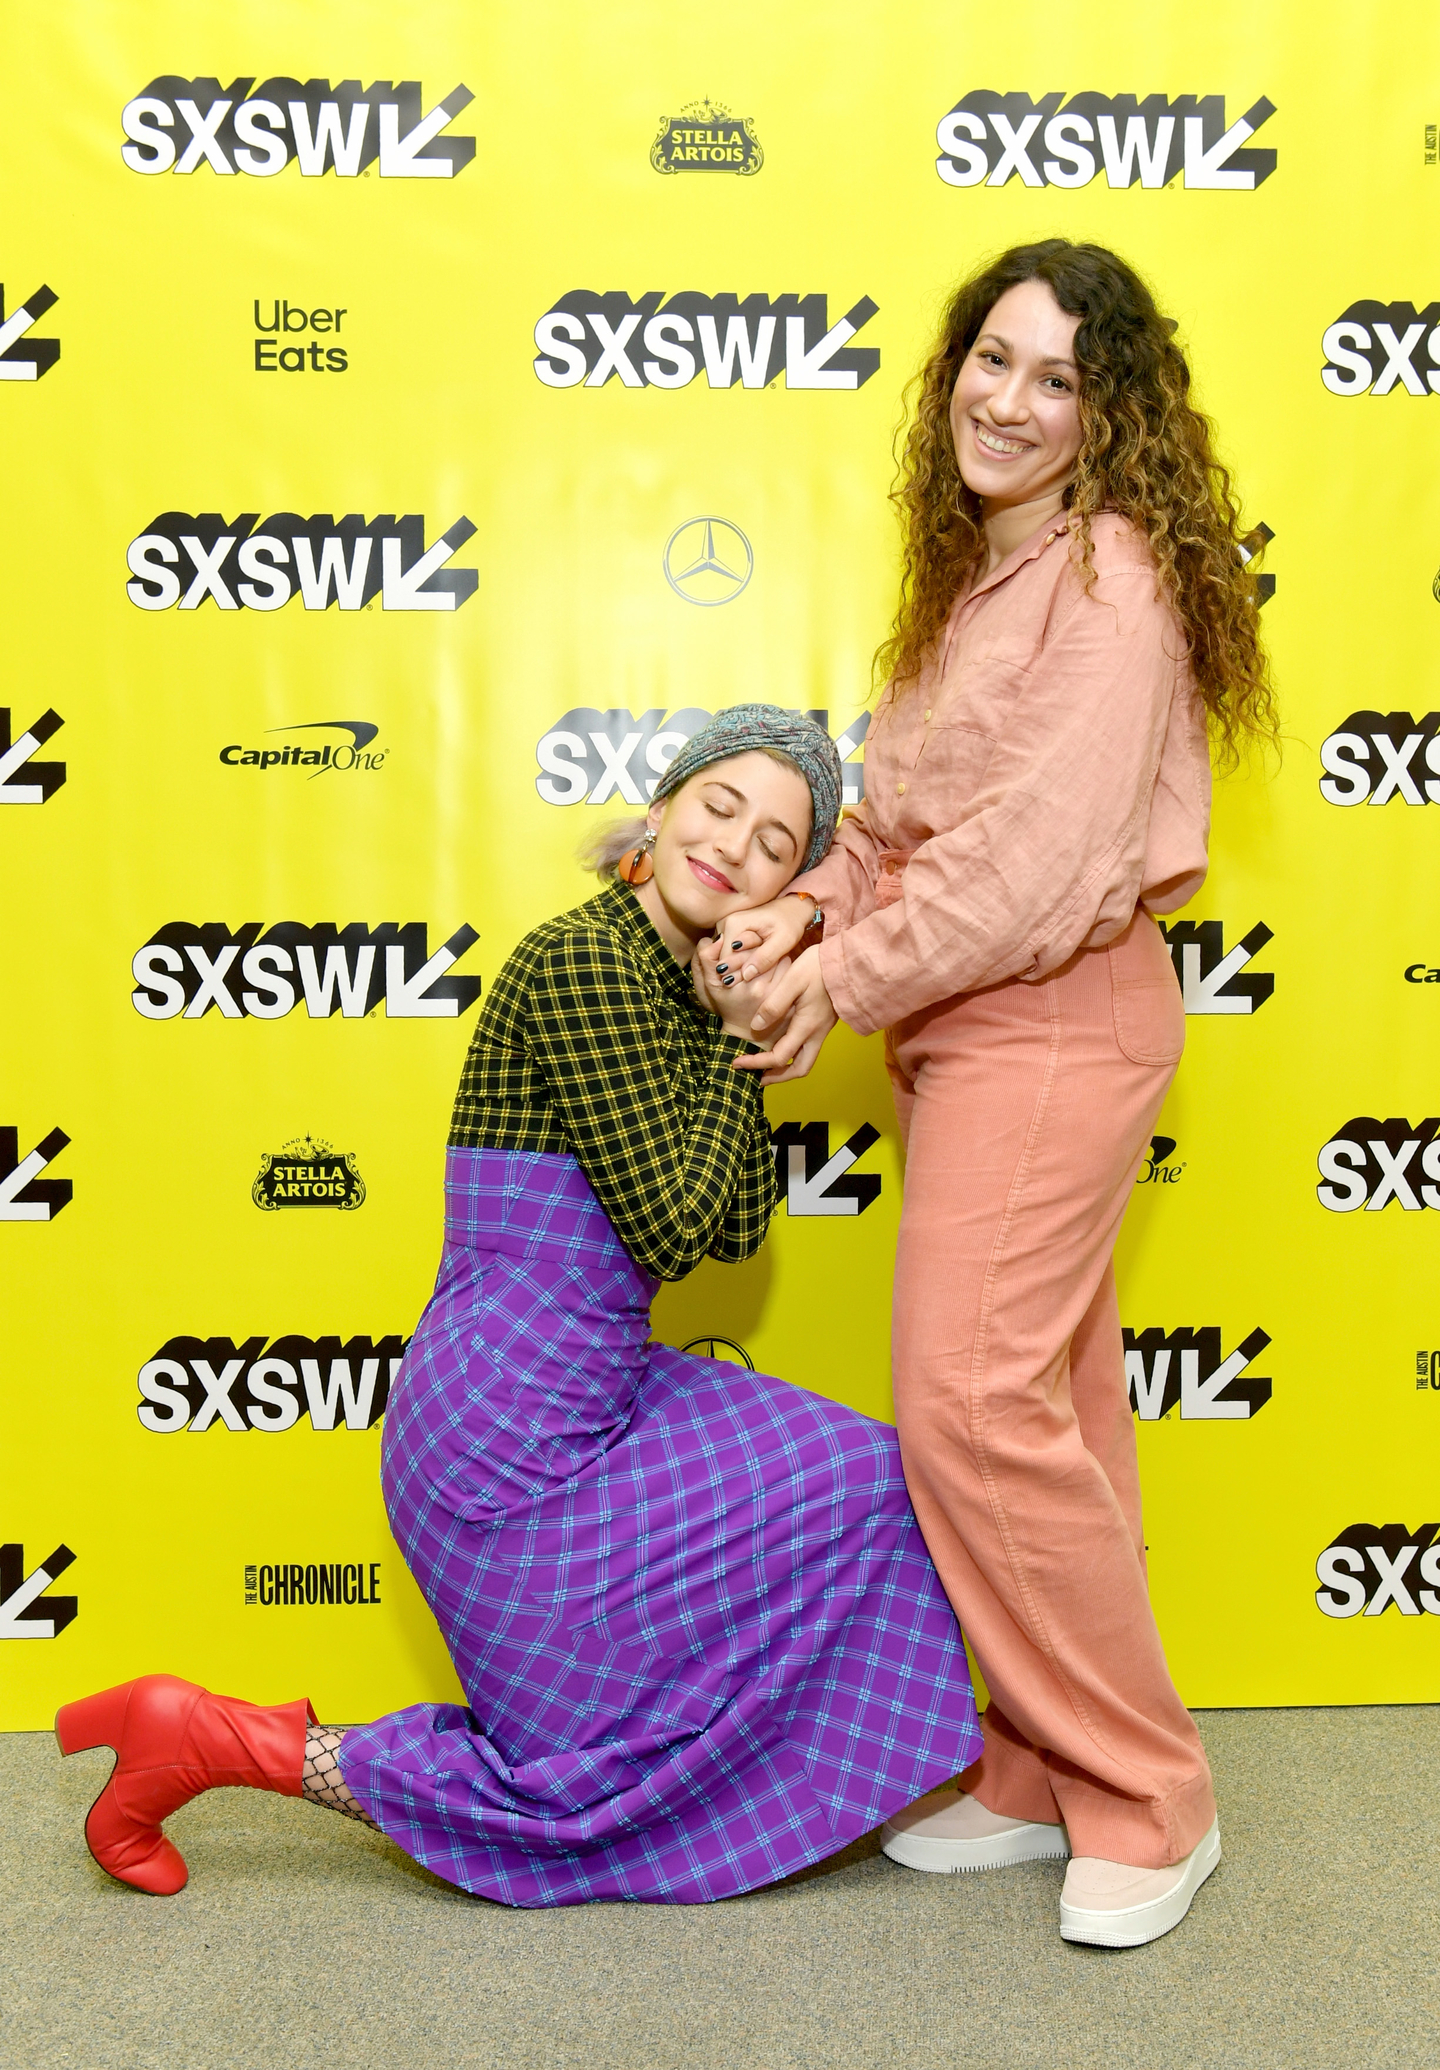 (L-R) Annabelle Attanasio and Lizzie Shapiro at the Mickey and the Bear world premiere at Stateside Theatre - Photo by Danny Matson/Getty Images for SXSW